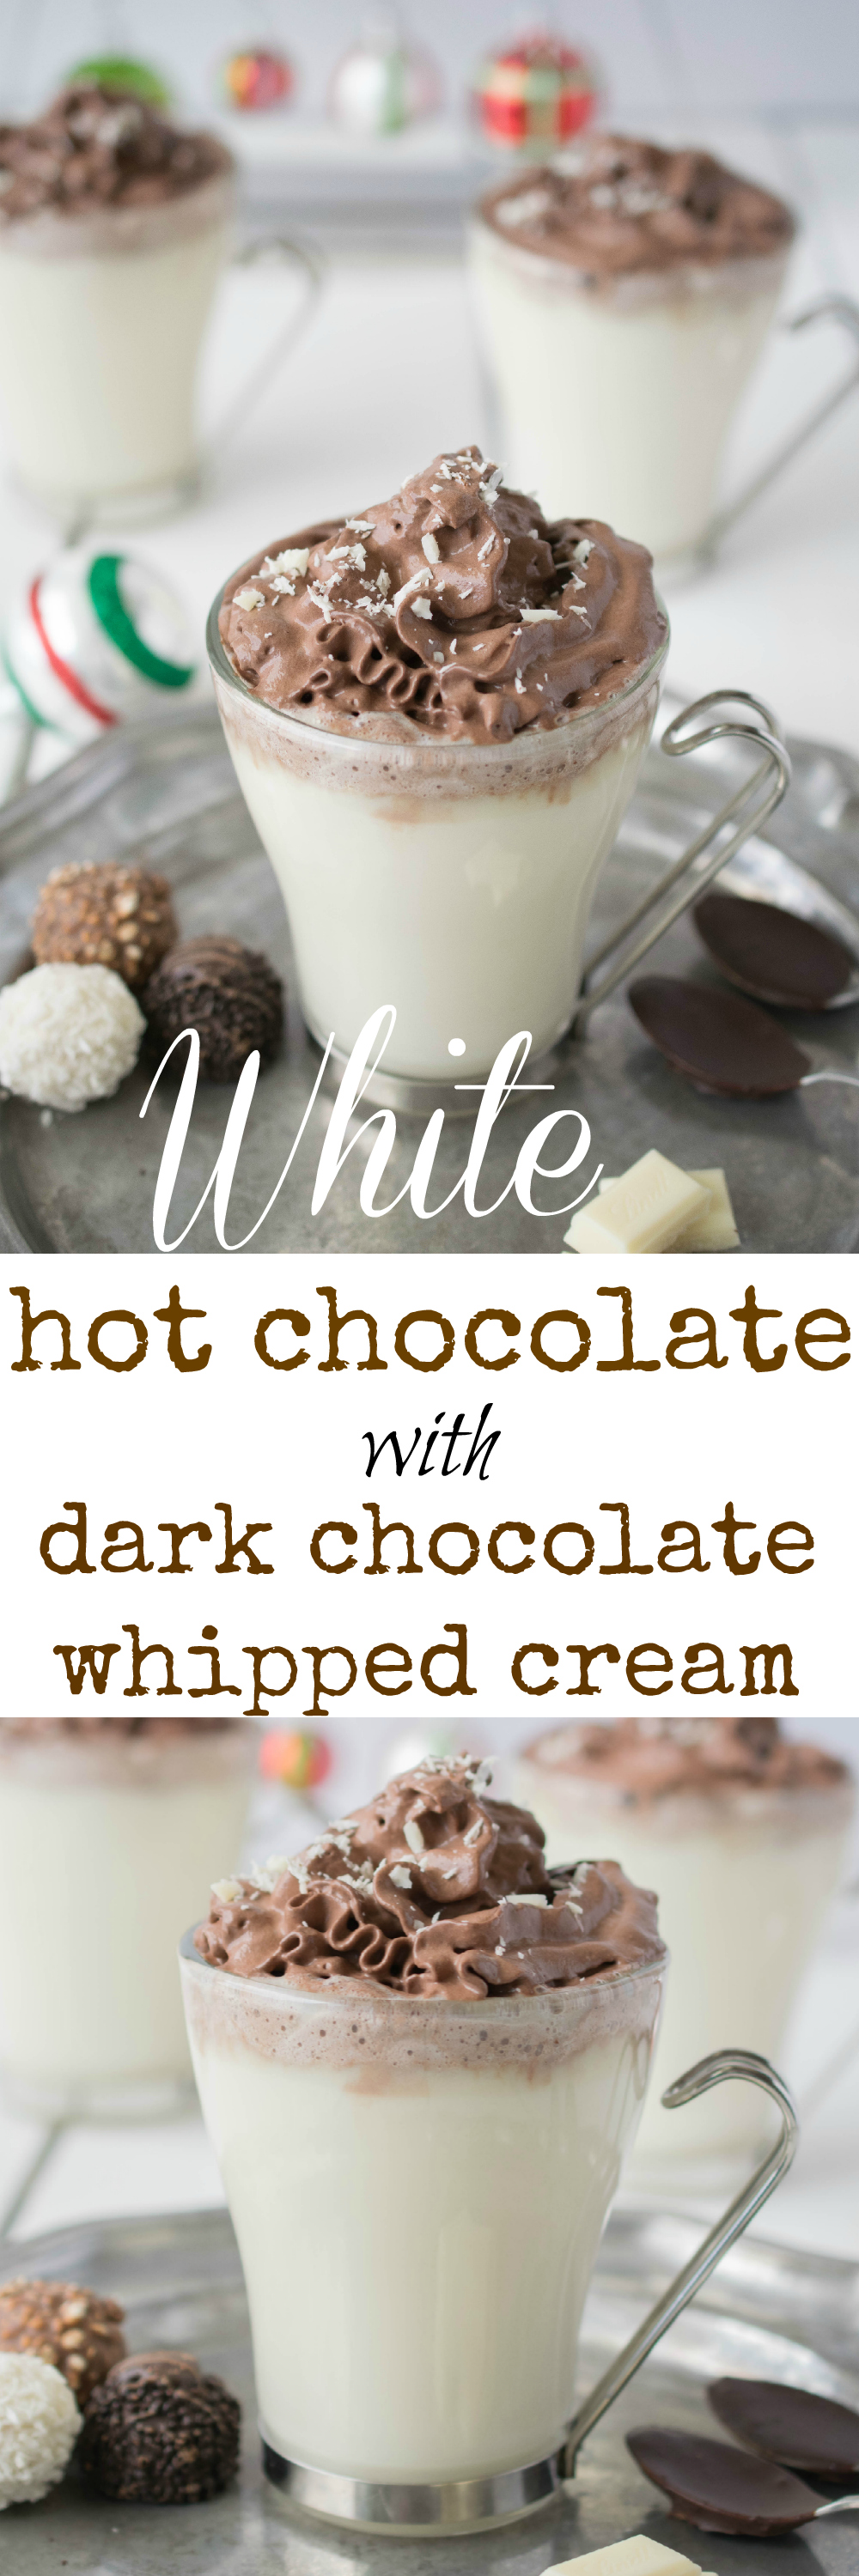 White hot chocolate with dark chocolate whipped cream piped on the top. It's a chocolate-fest that is a warm and comforting drink and will satisfy all chocolate lovers.